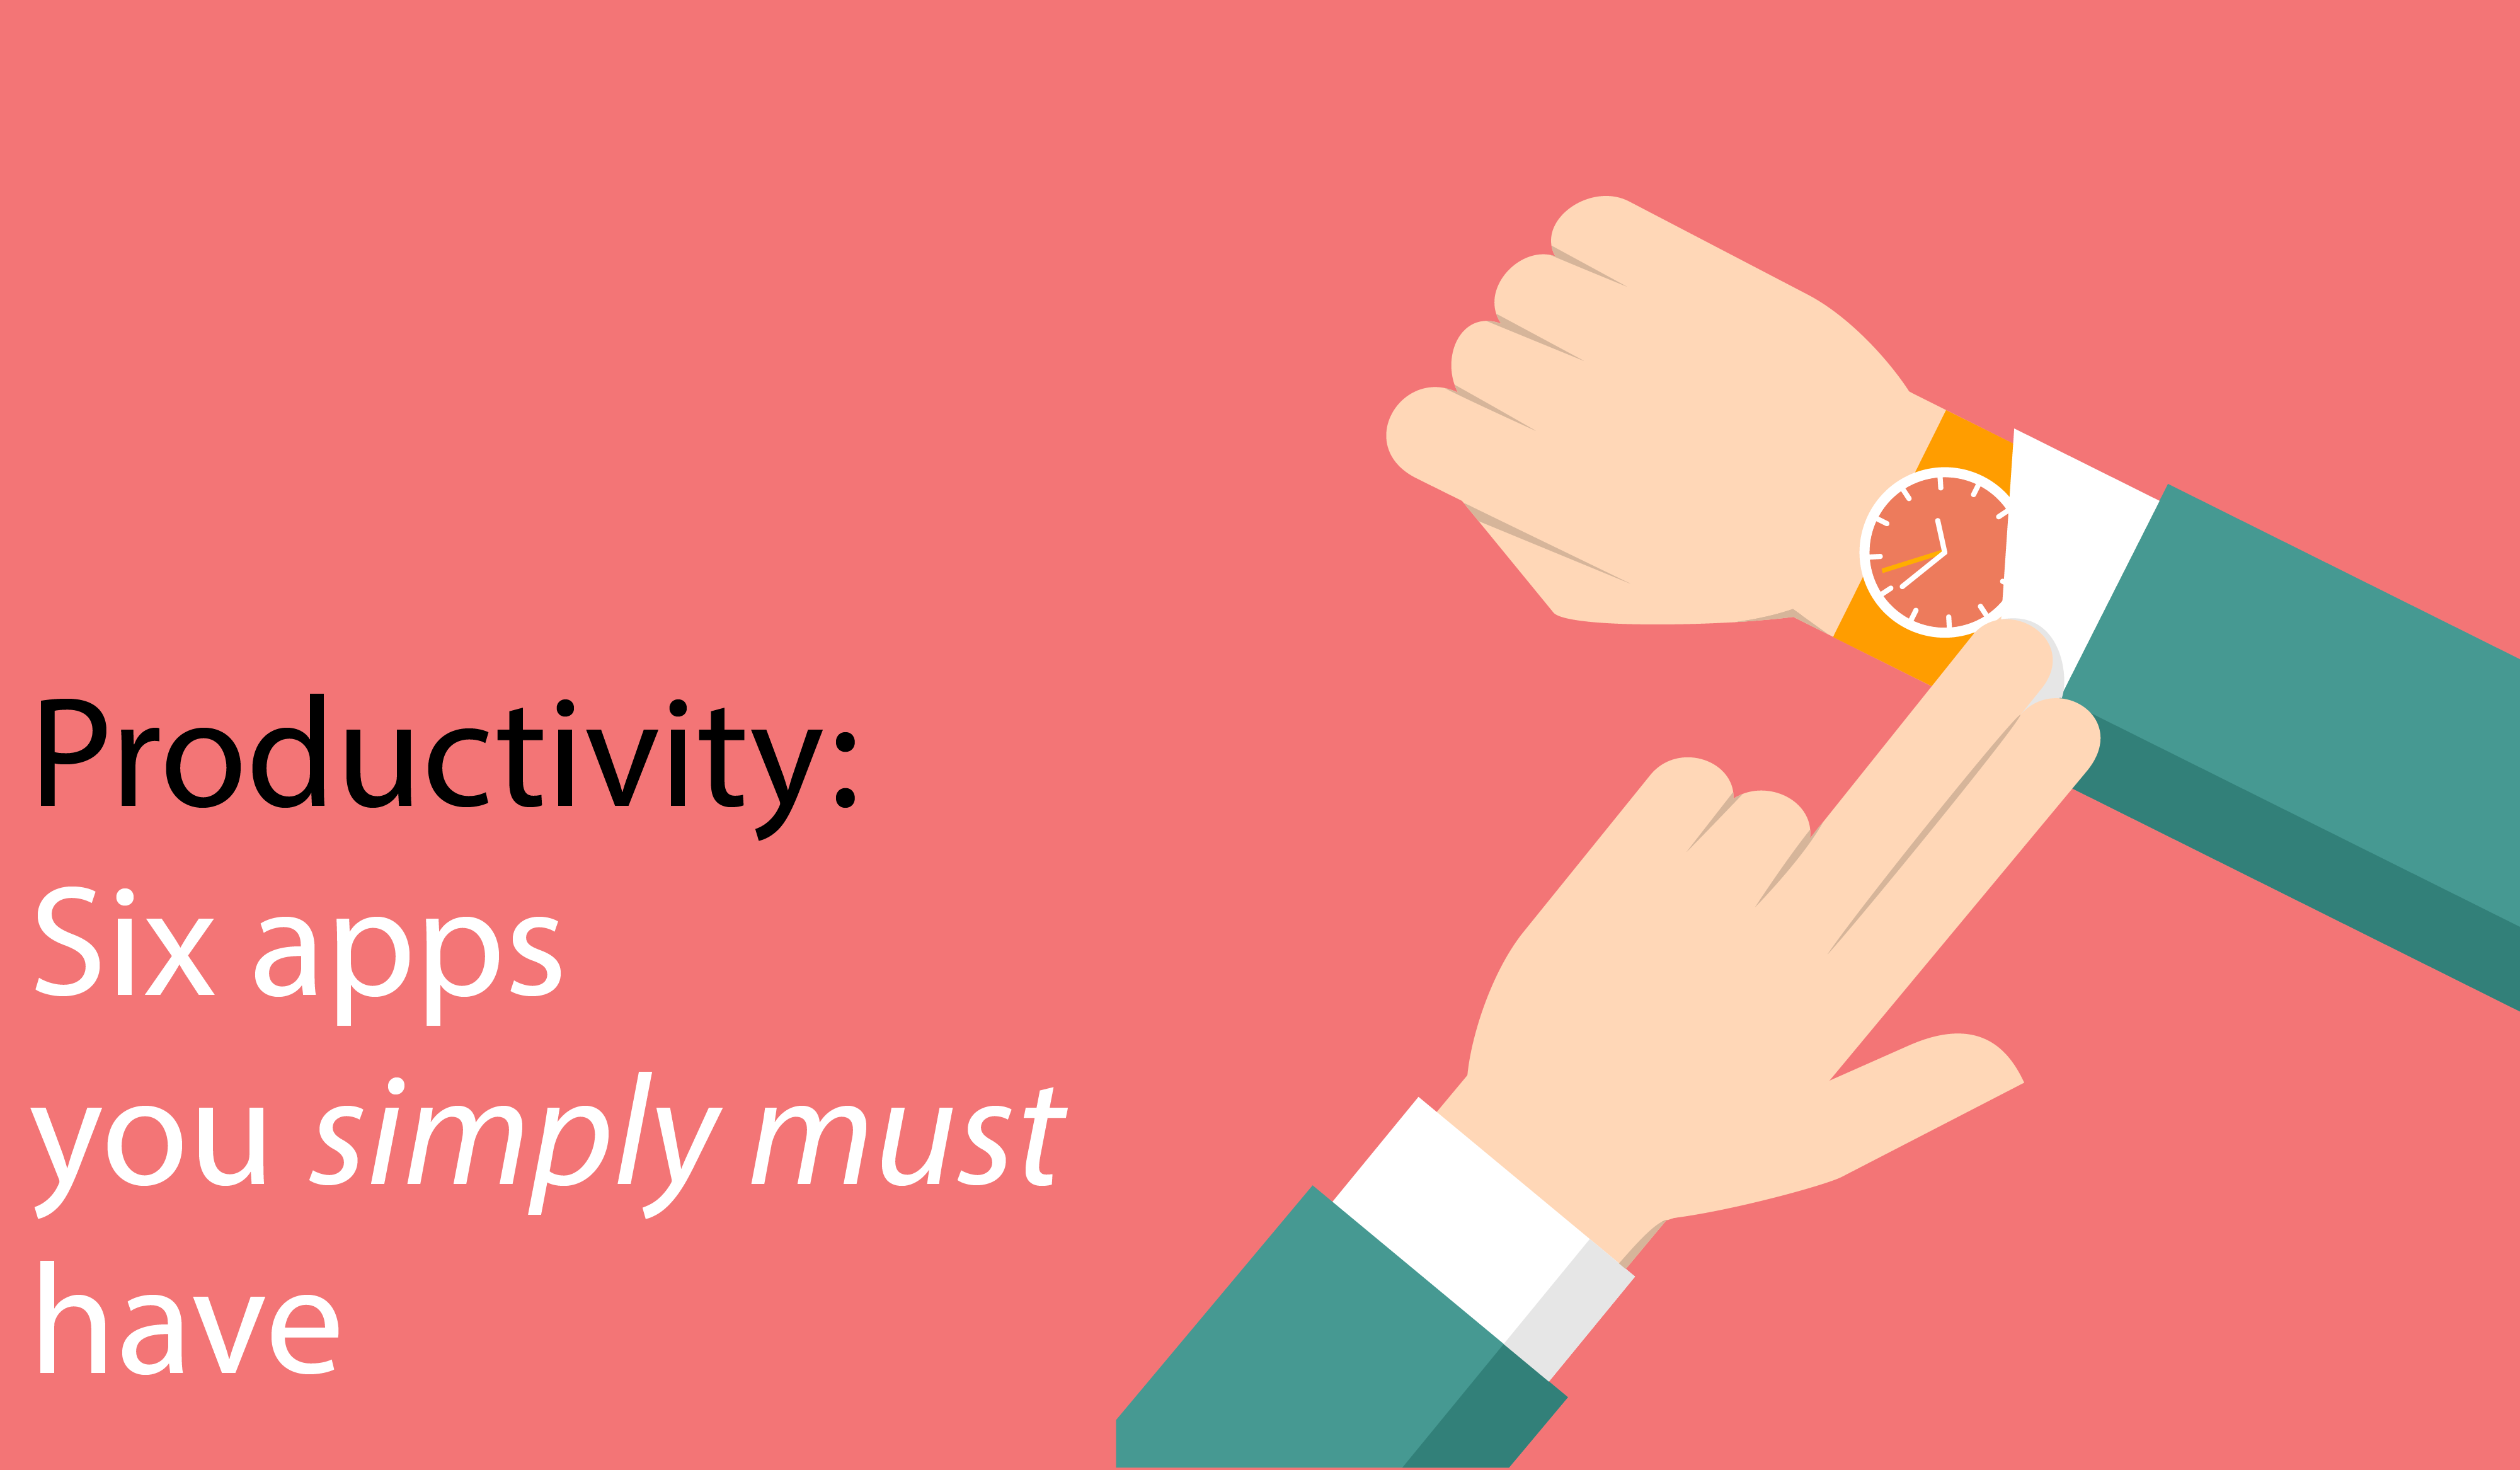 Productivity: Six apps you simply must have